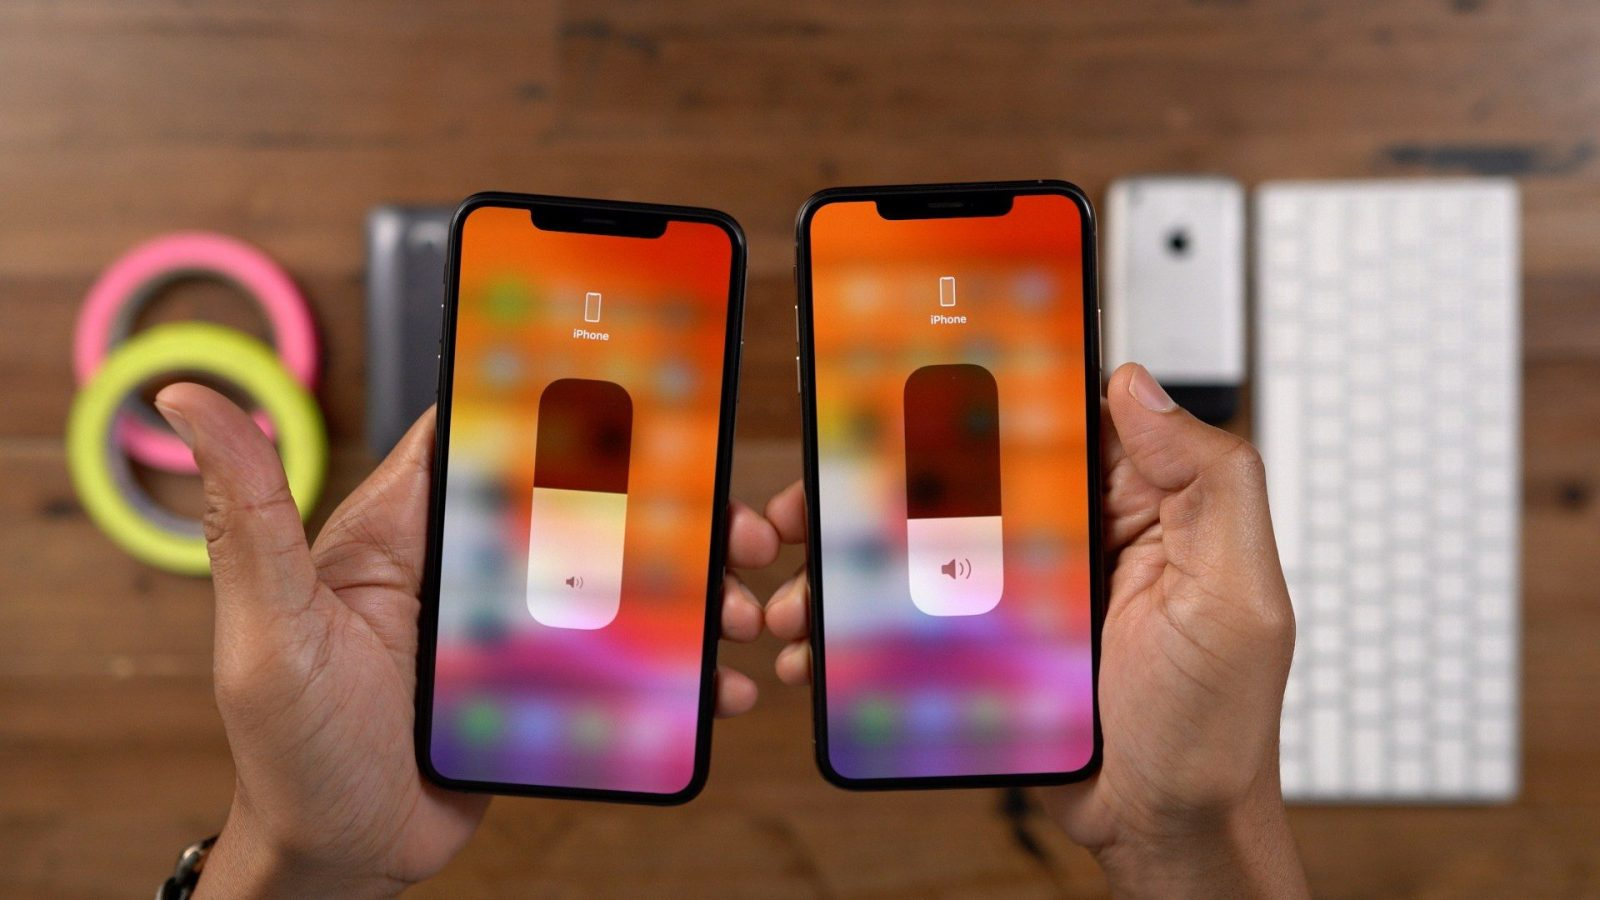 Apple releasing fourth iOS 13.1 developer and public betas today